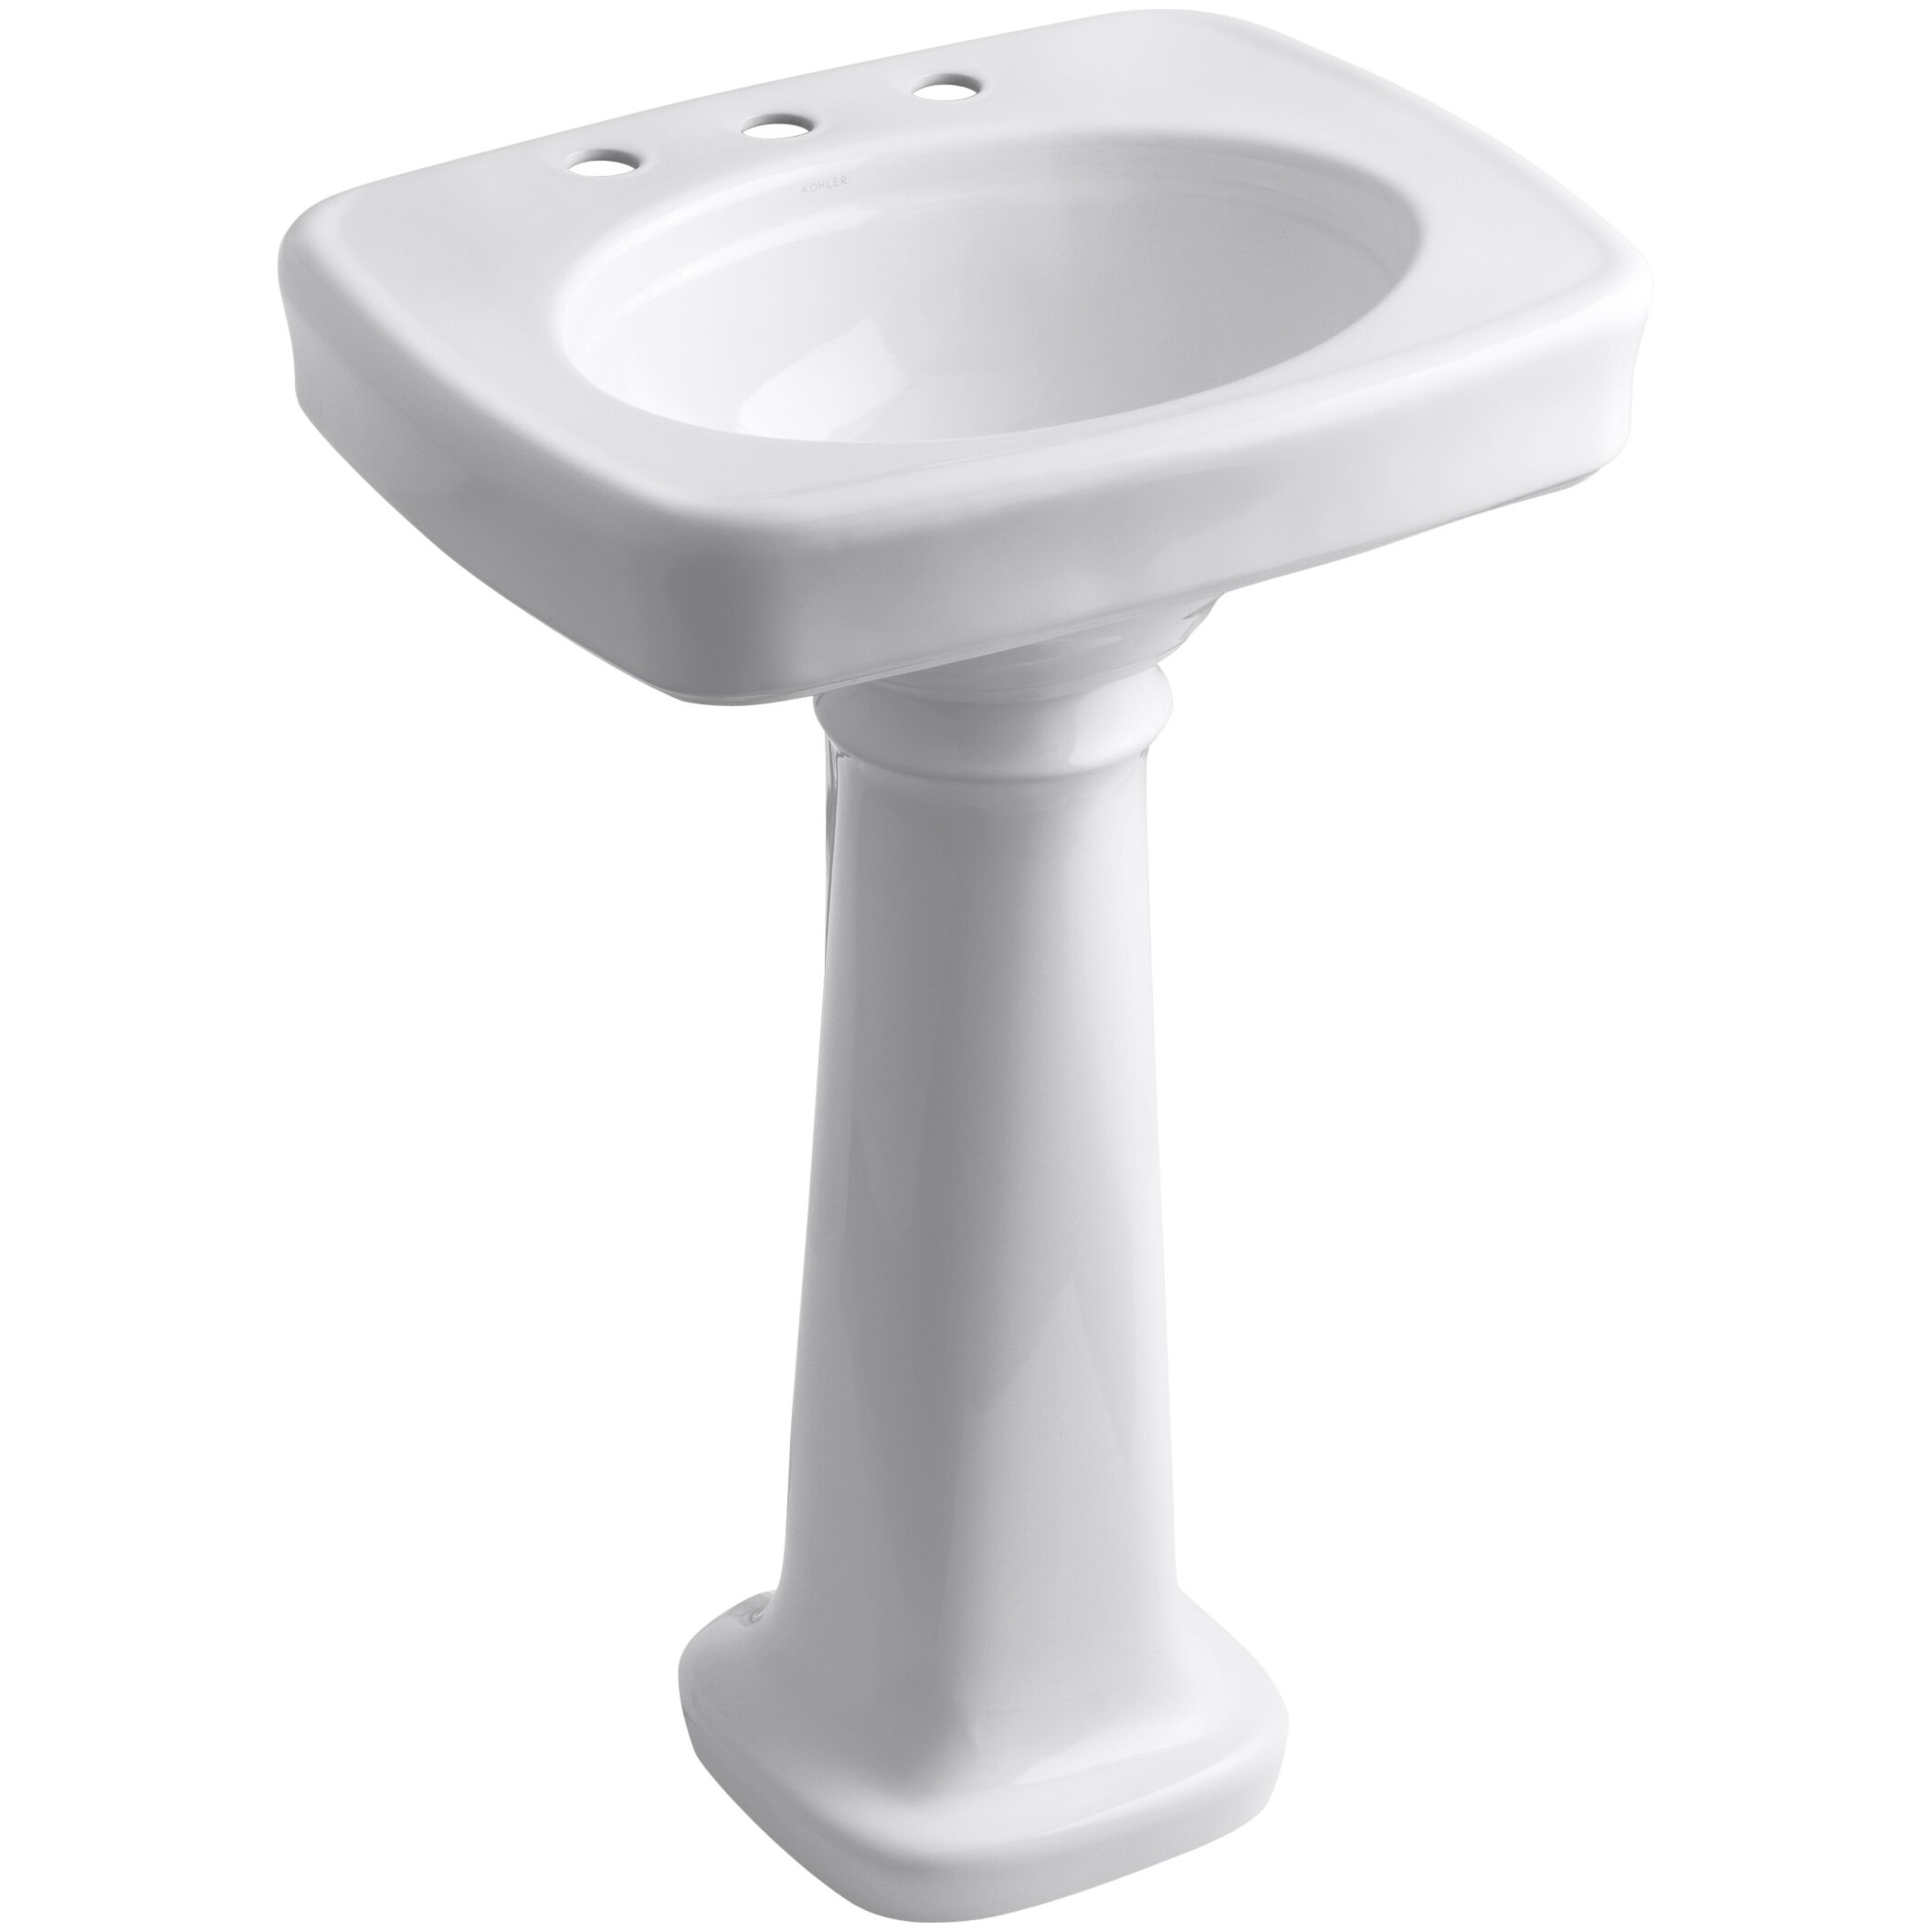 Kohler Bancroft 24 quot  Pedestal Bathroom Sink. Kohler Bancroft 24  Pedestal Bathroom Sink   Reviews   Wayfair